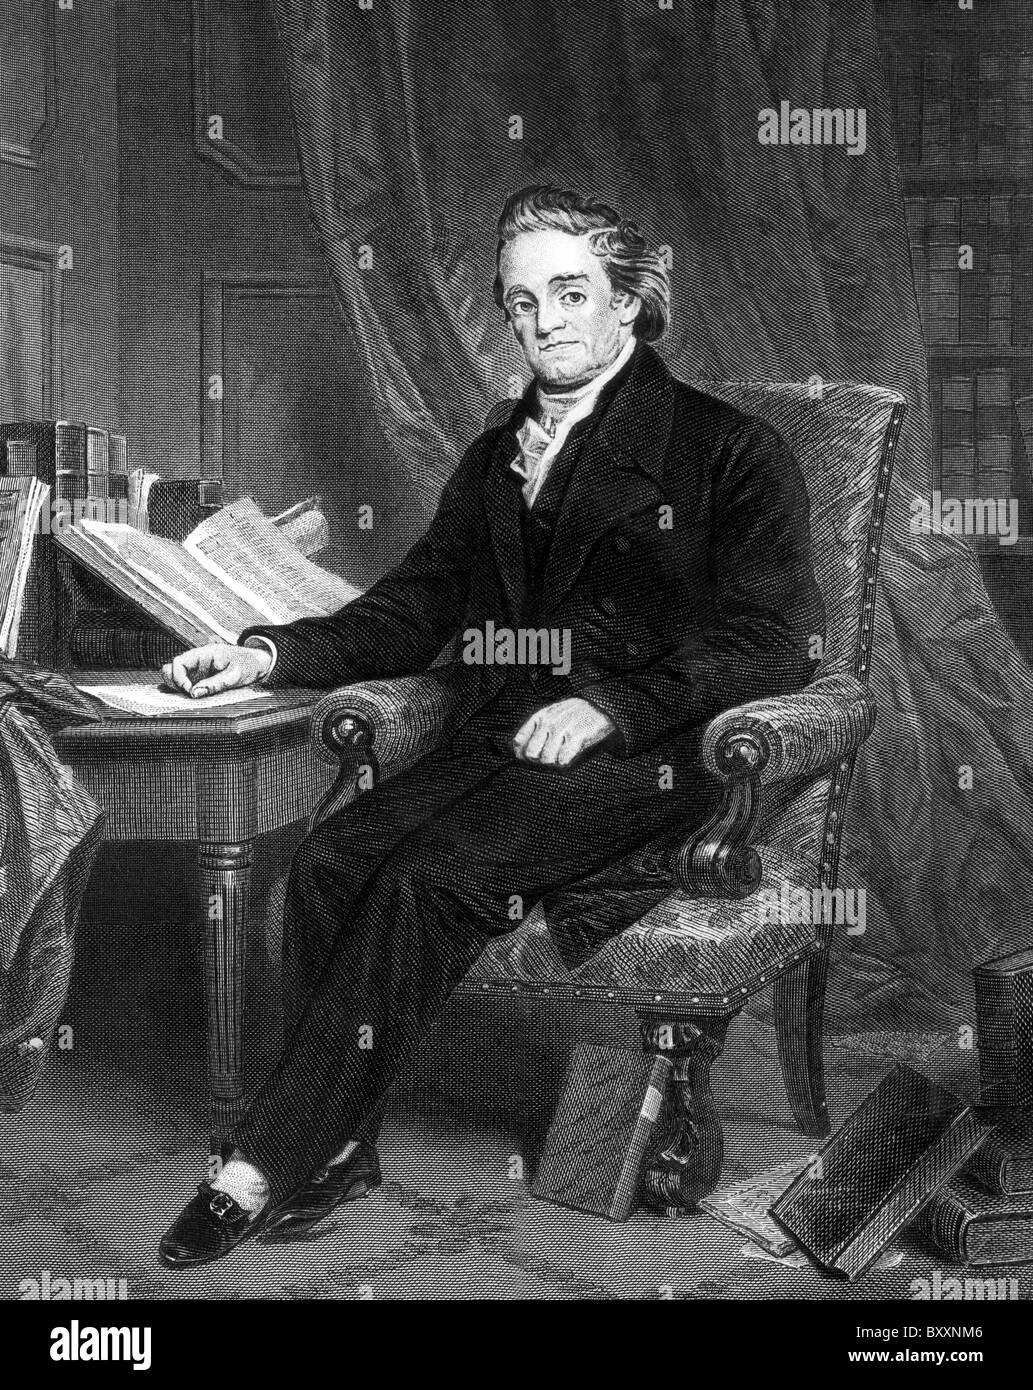 Noah Webster, American lexicographer, textbook pioneer, spelling reformer, political writer, editor, and prolific - Stock Image